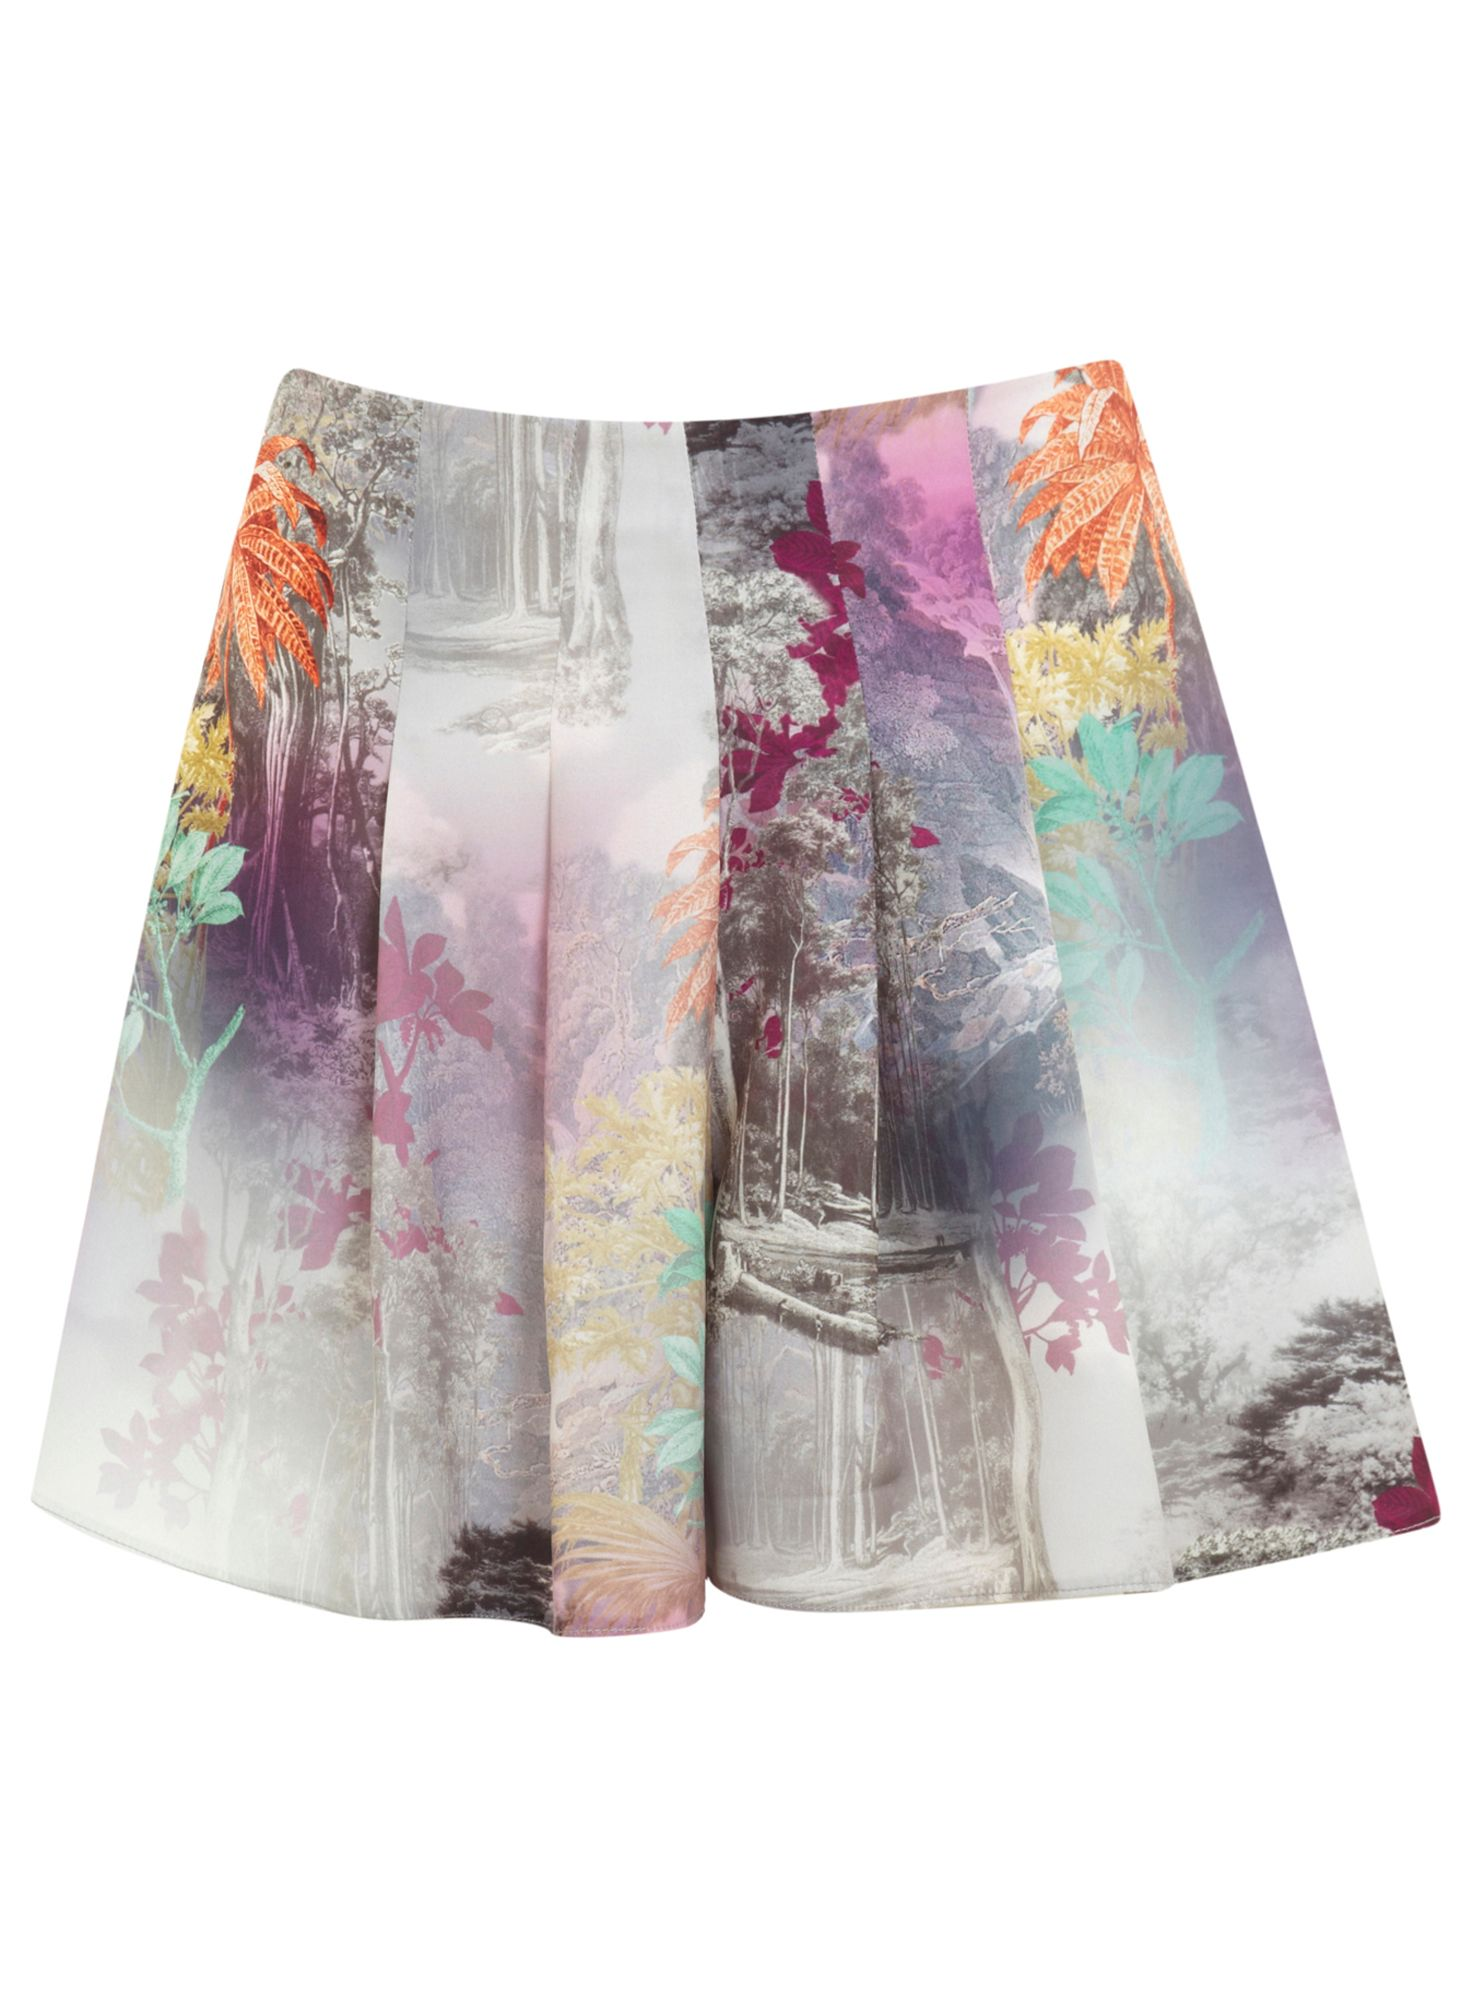 Digital printed skort